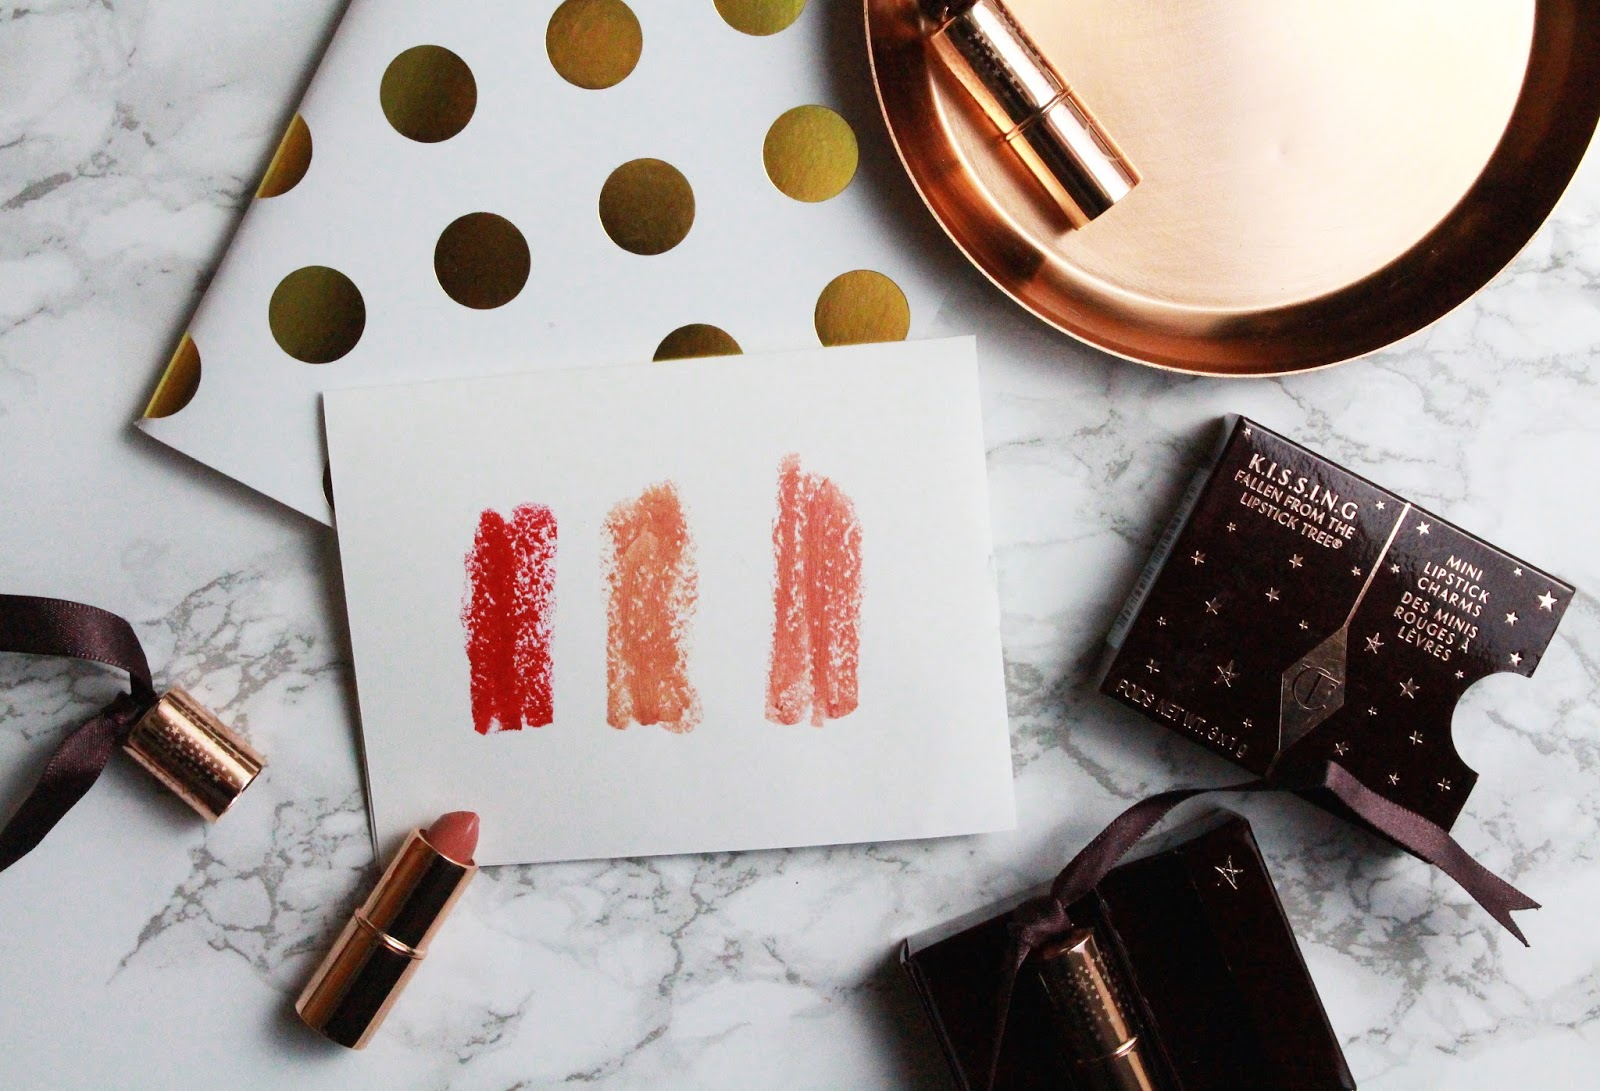 Charlotte Tilbury Mini Lipsticks, Beauty Stocking Fillers